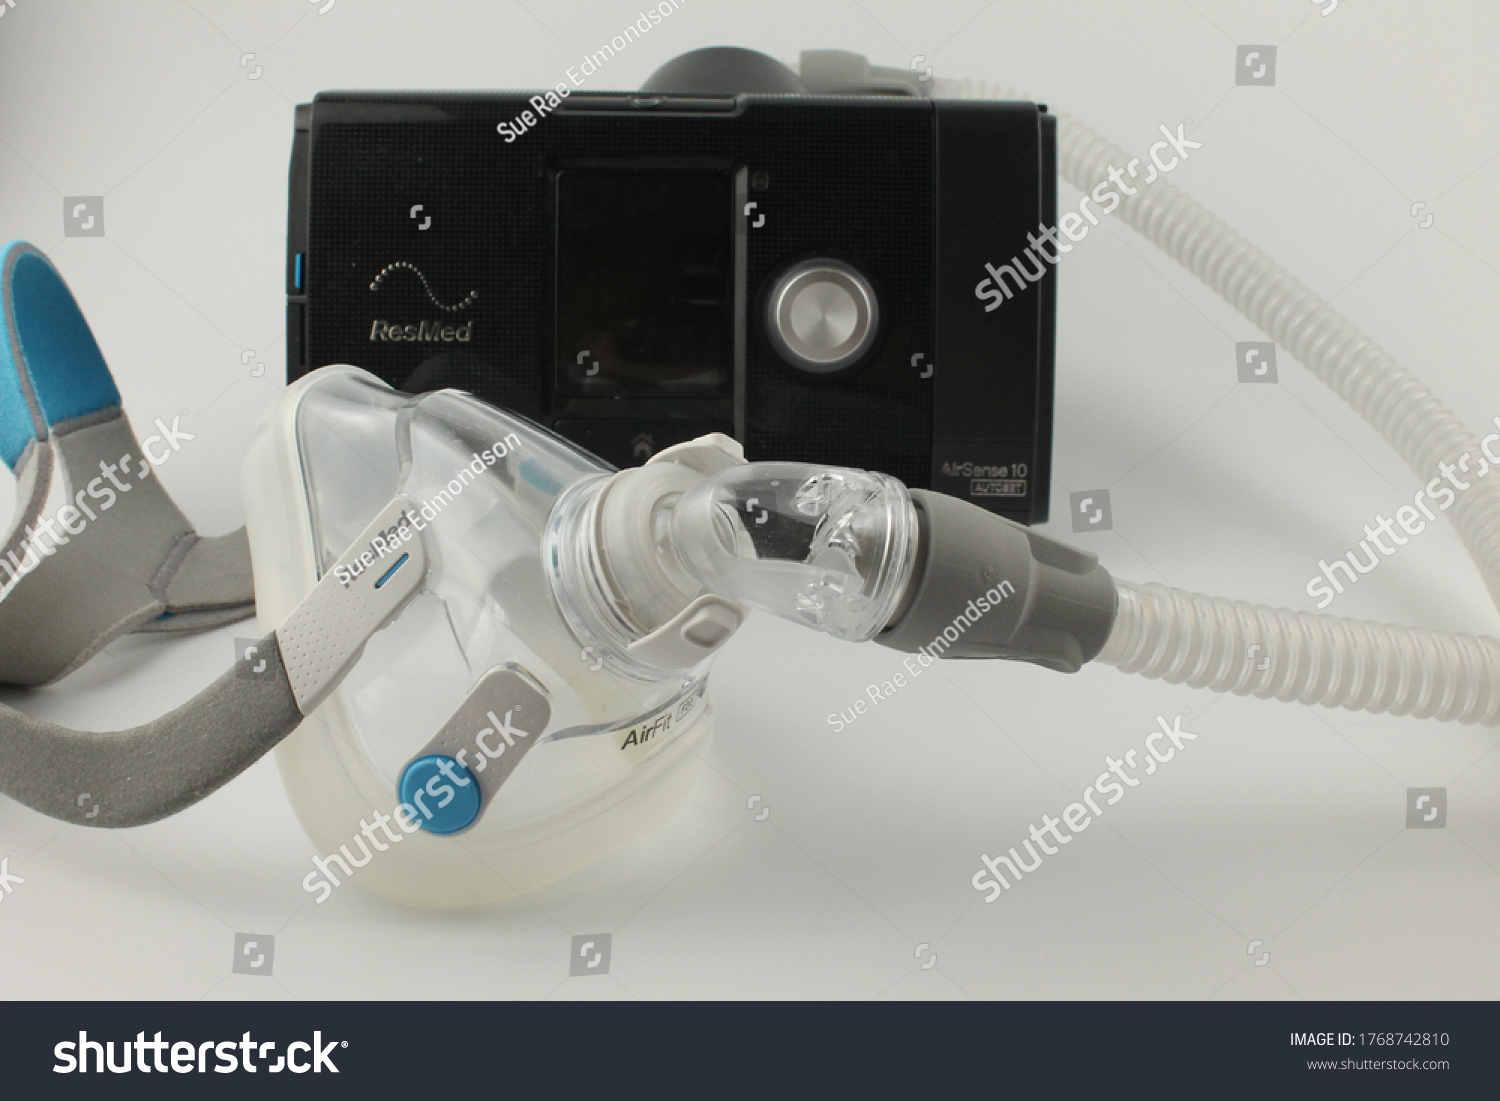 Upholland, Lancashire, UK, 03/07/2020: CPAP machine with adult full face mask for the treatment of sleep apnoea